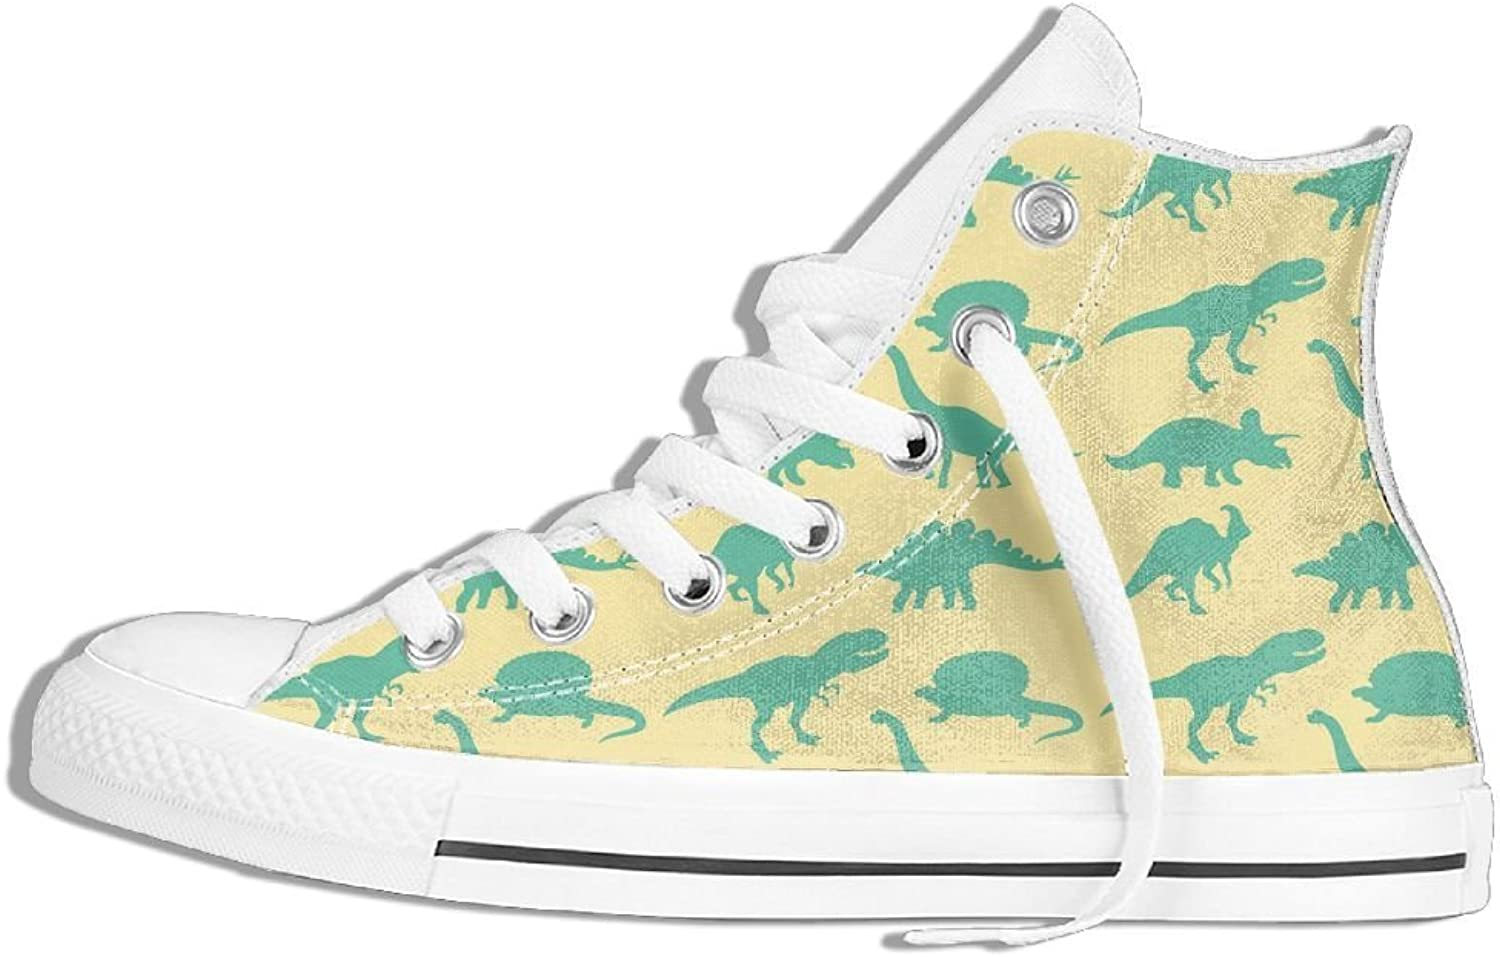 Unisex Classic Canvas shoes Green Dinosaur Fashion High Top Sneakers